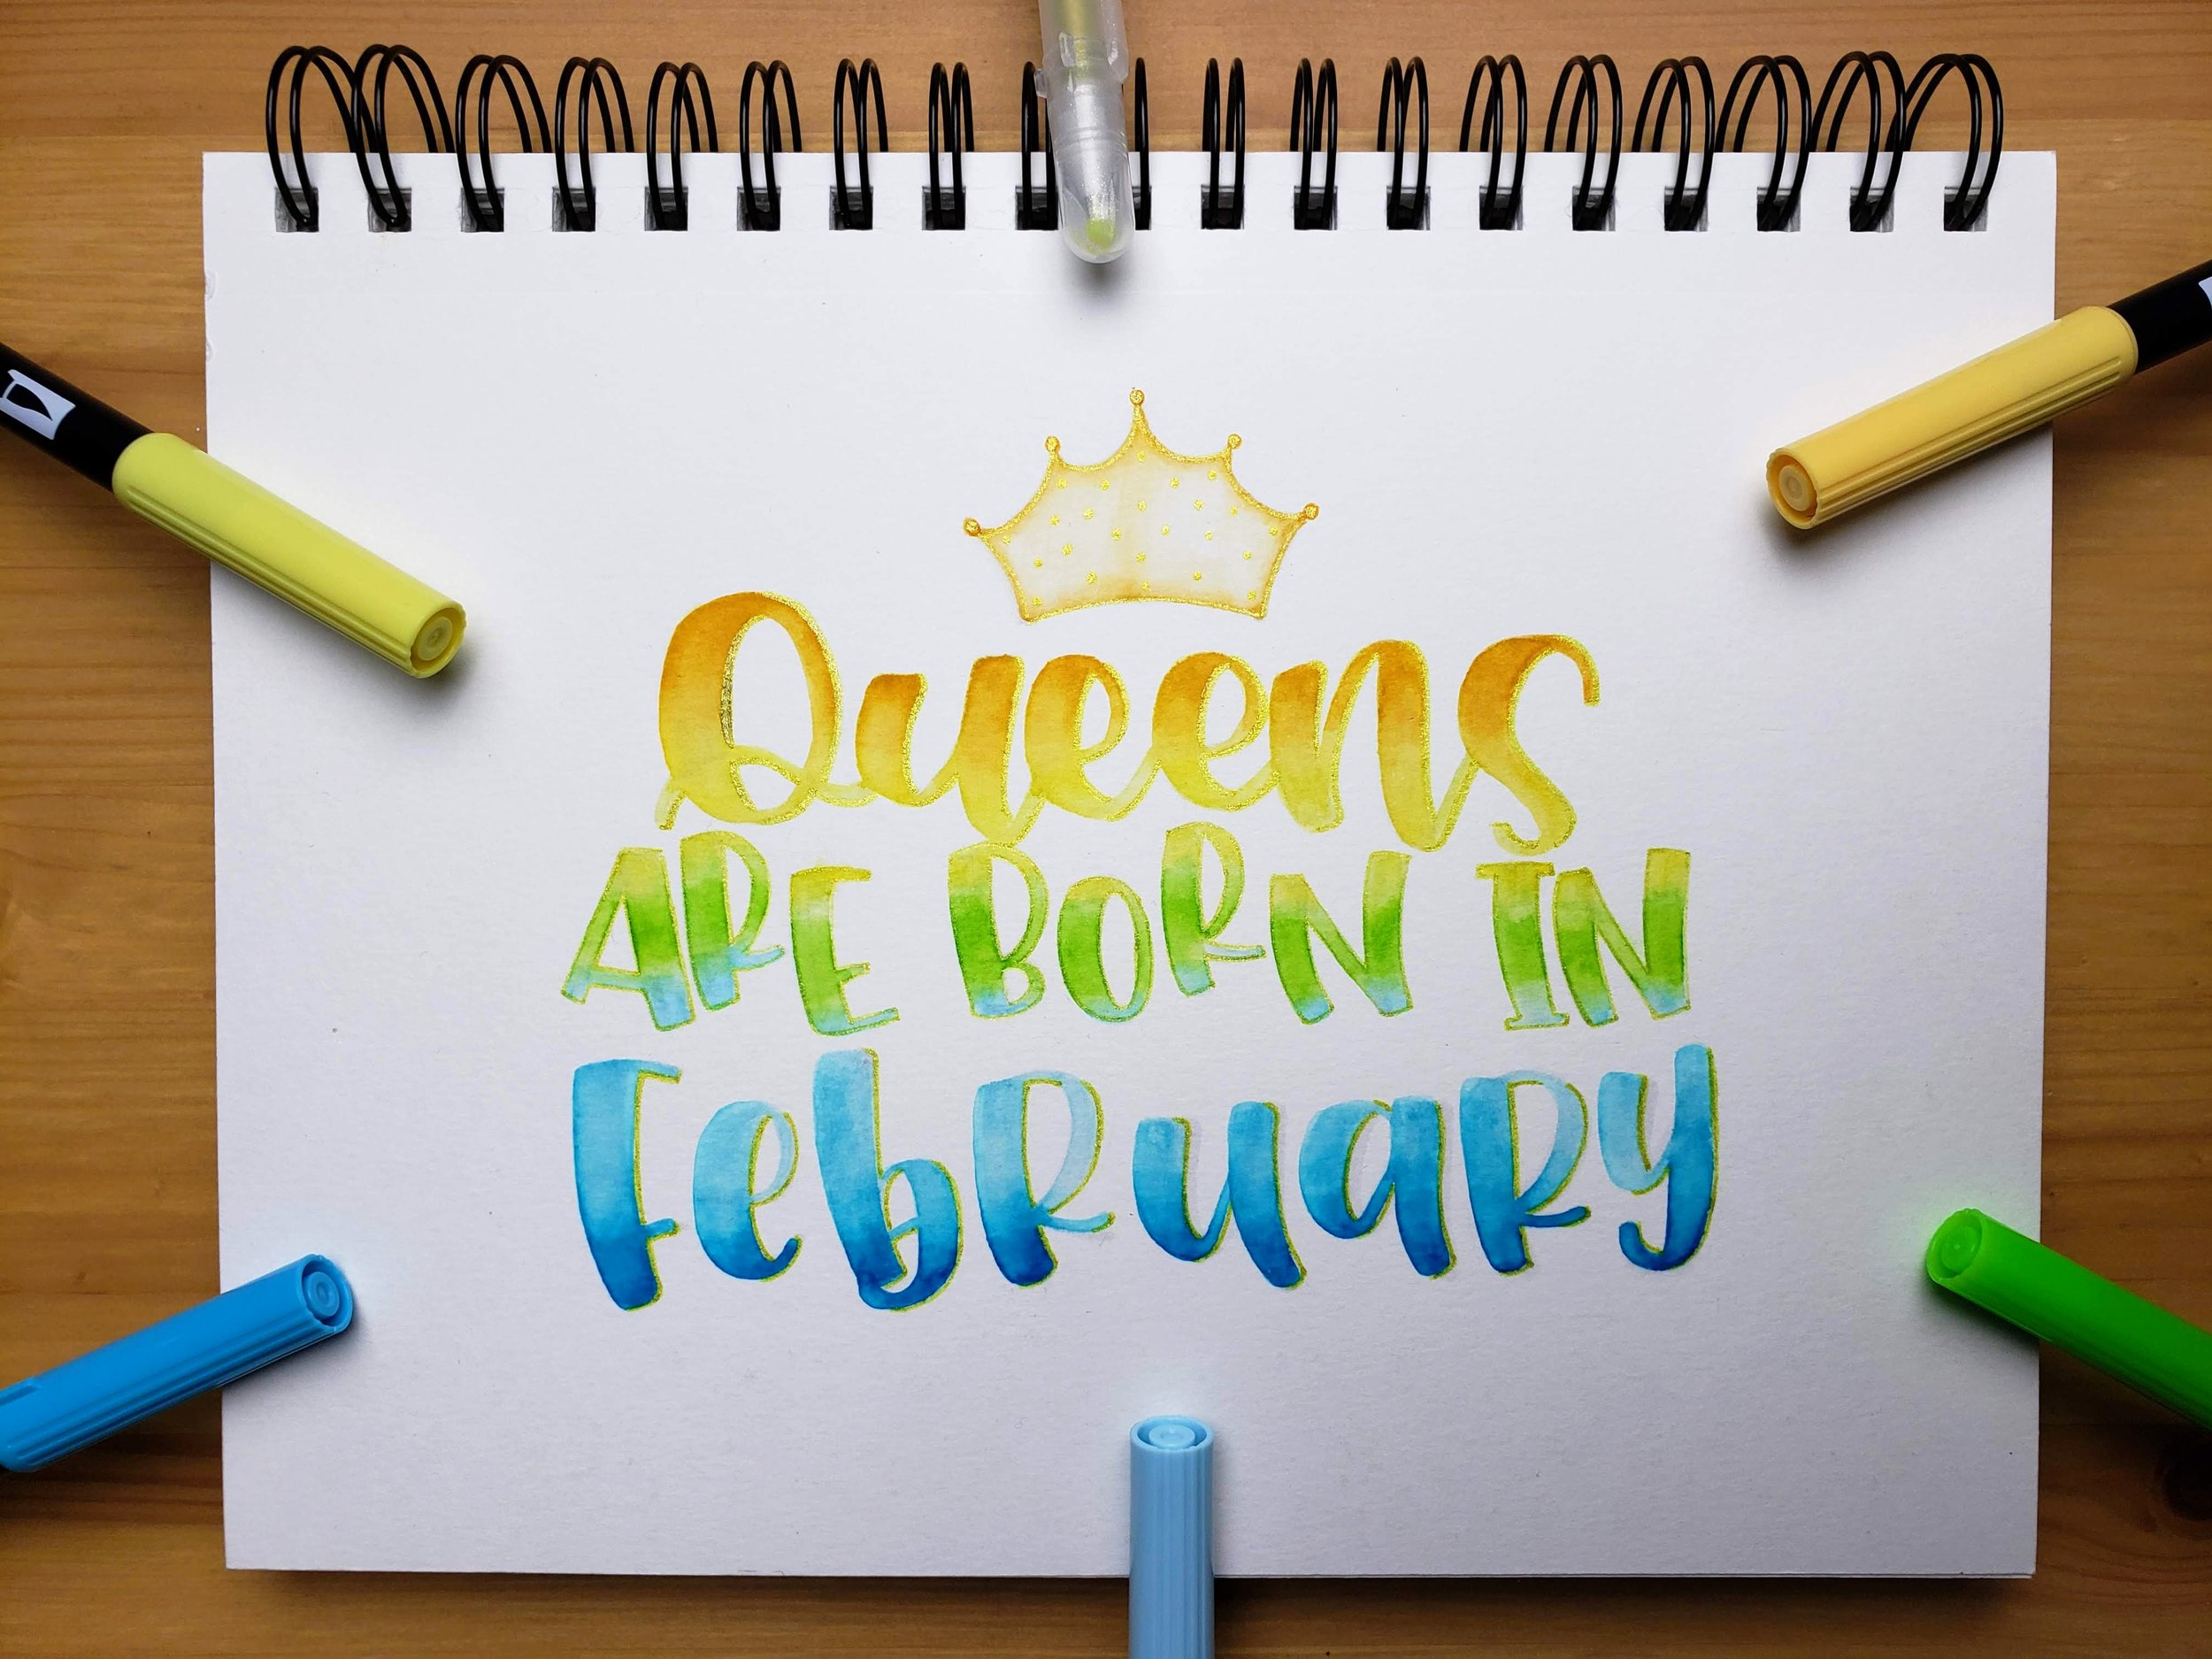 queens-are-born-in- february-letters-by-gigi-hand-lettering-los-angeles-artist-custom-typography-modern-calligraphy-instagram-art